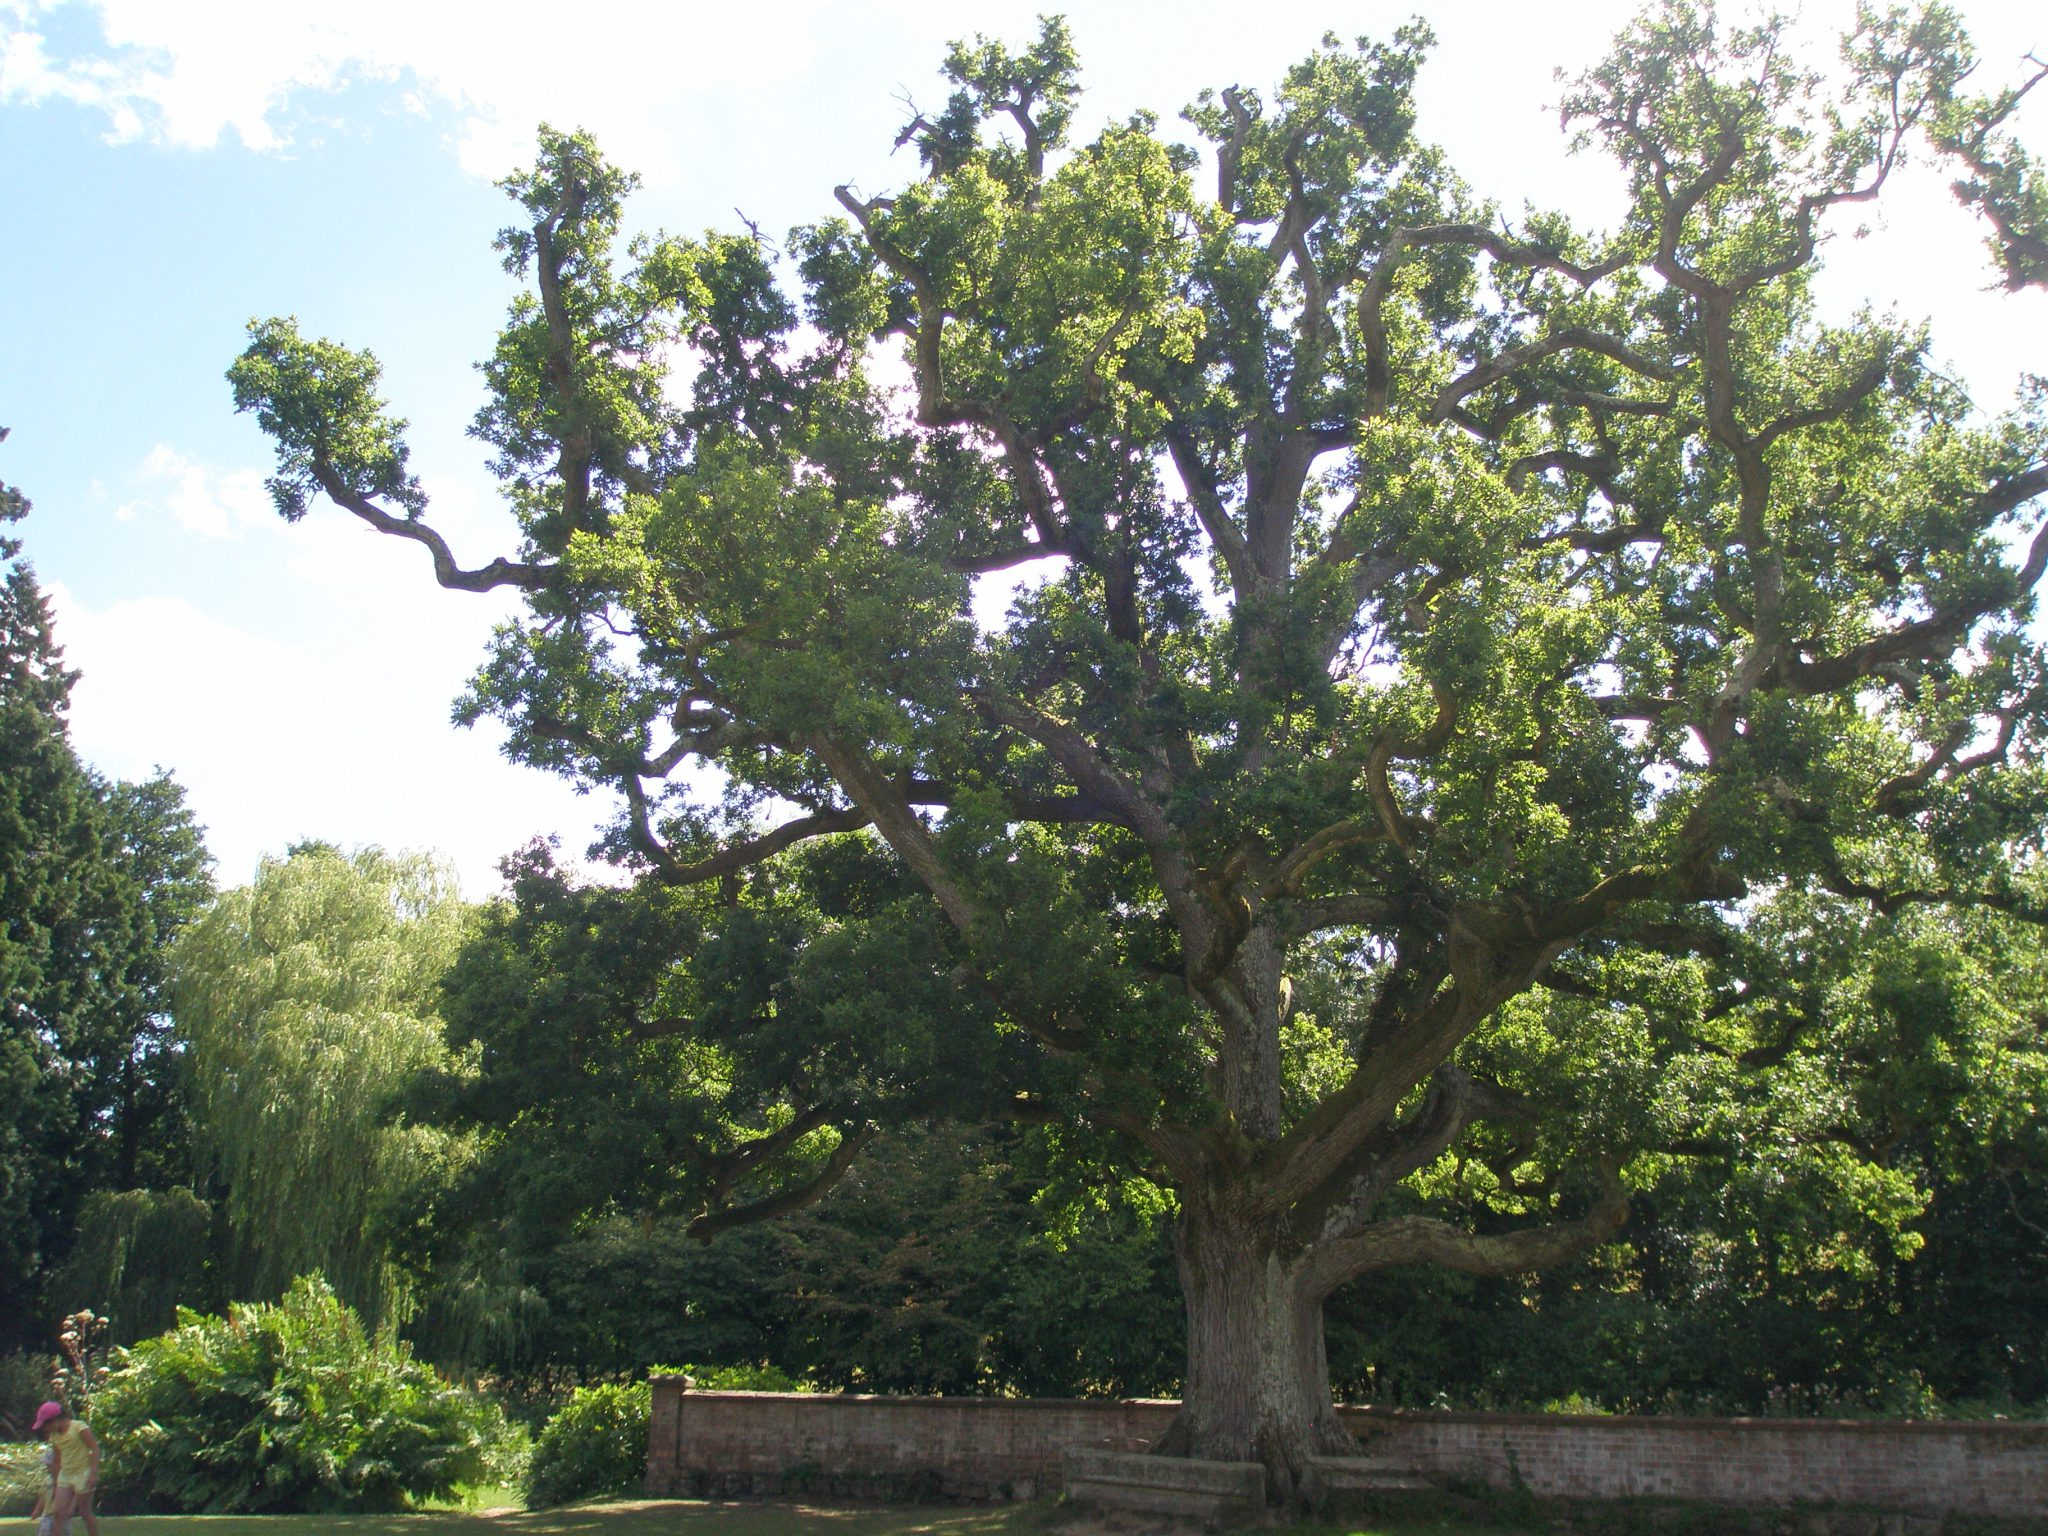 A closer look at the magnificent tree on the Old Castle's Lawn